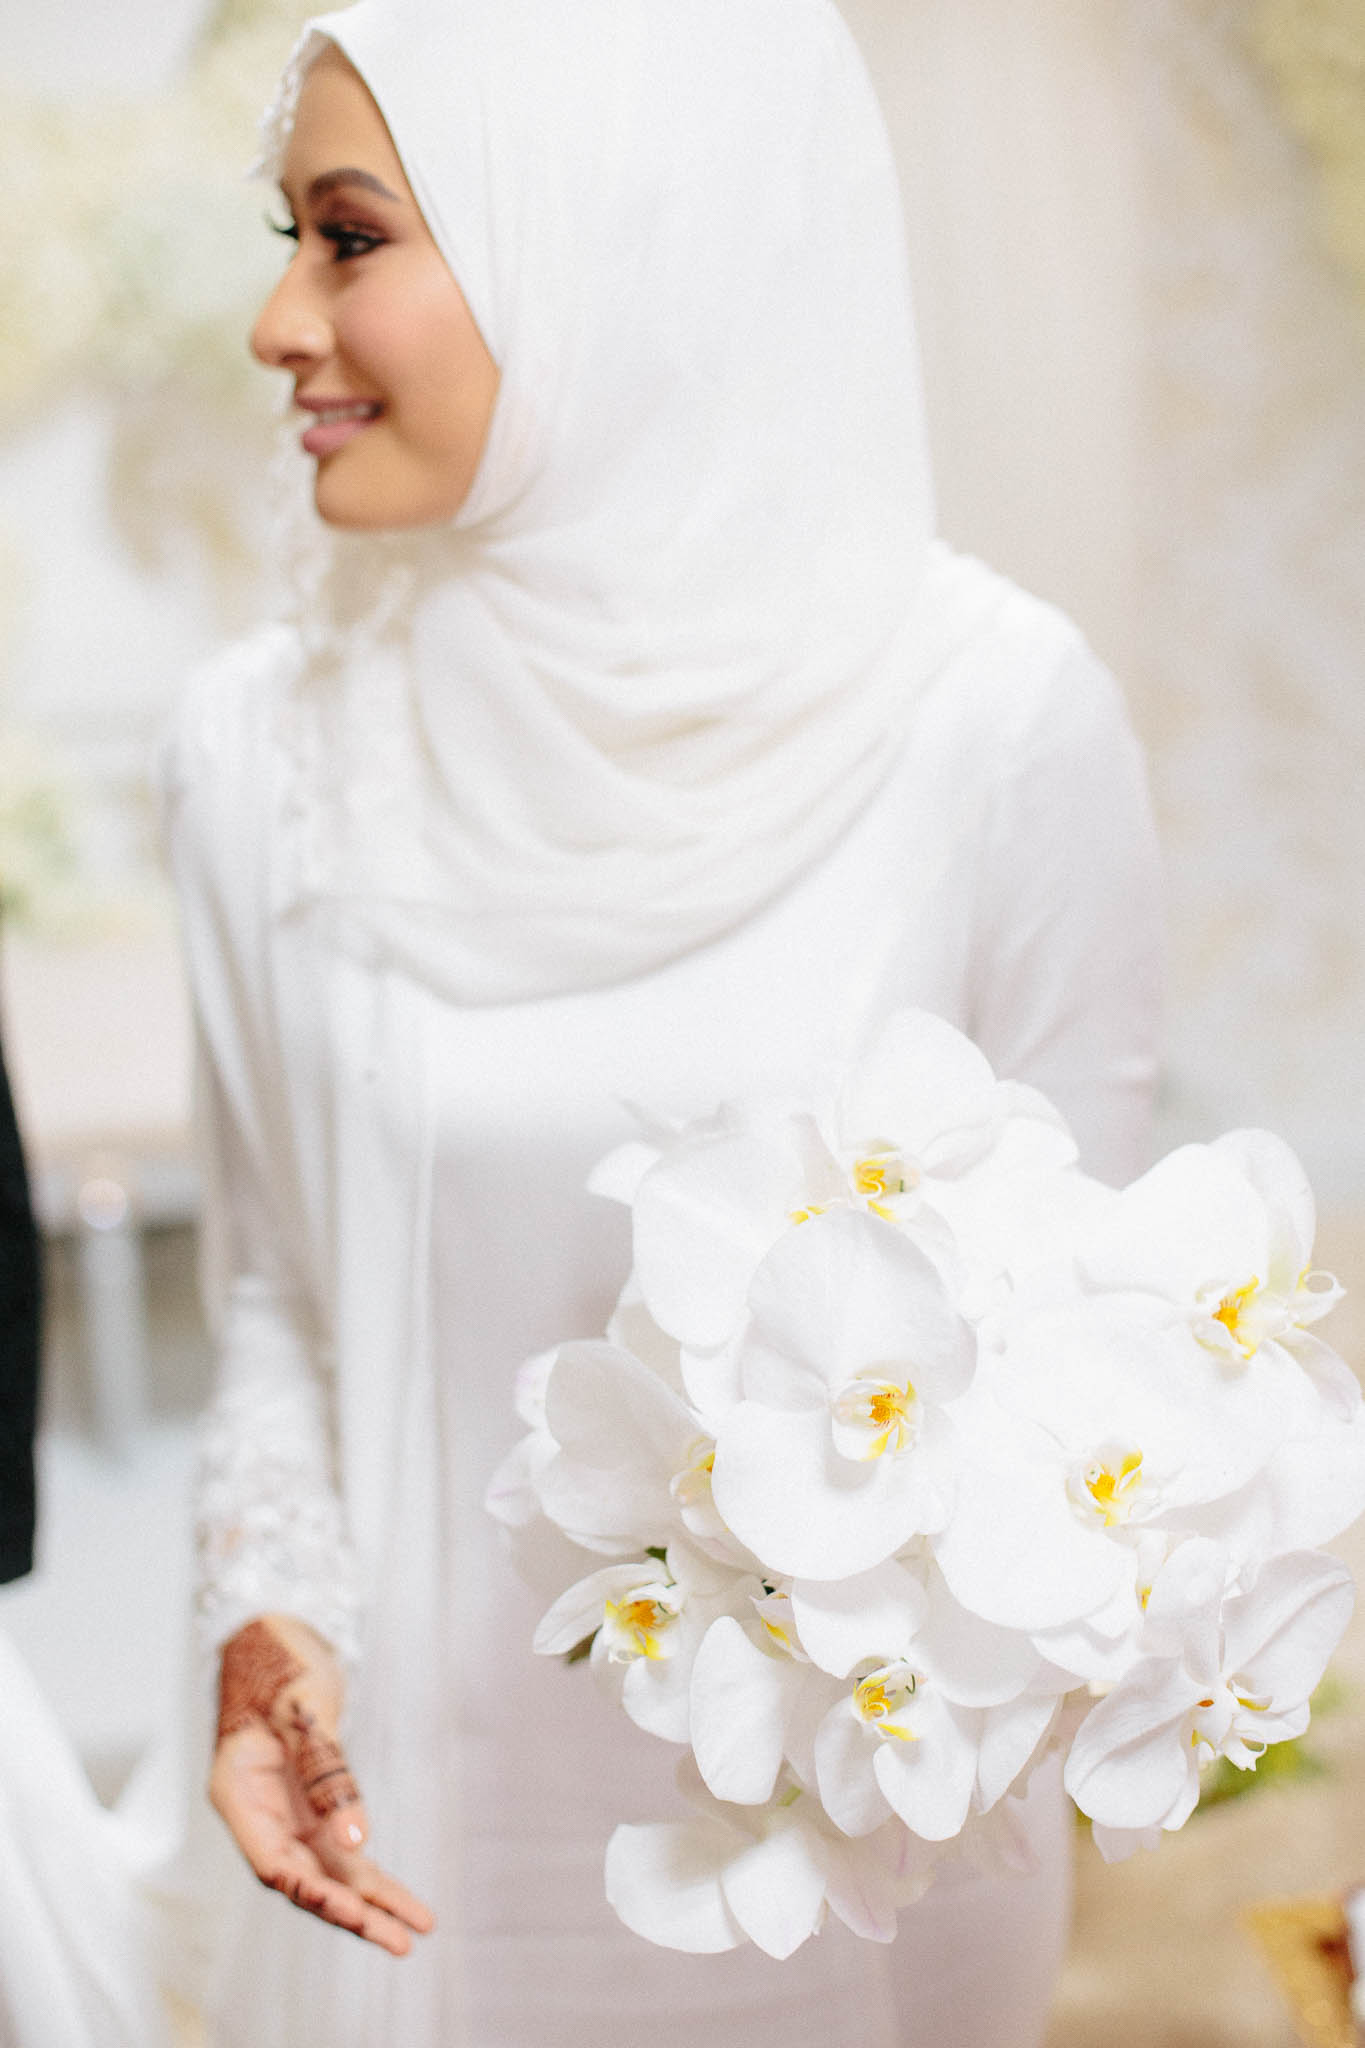 singapore-wedding-photographer-sarah-razif-40.jpg